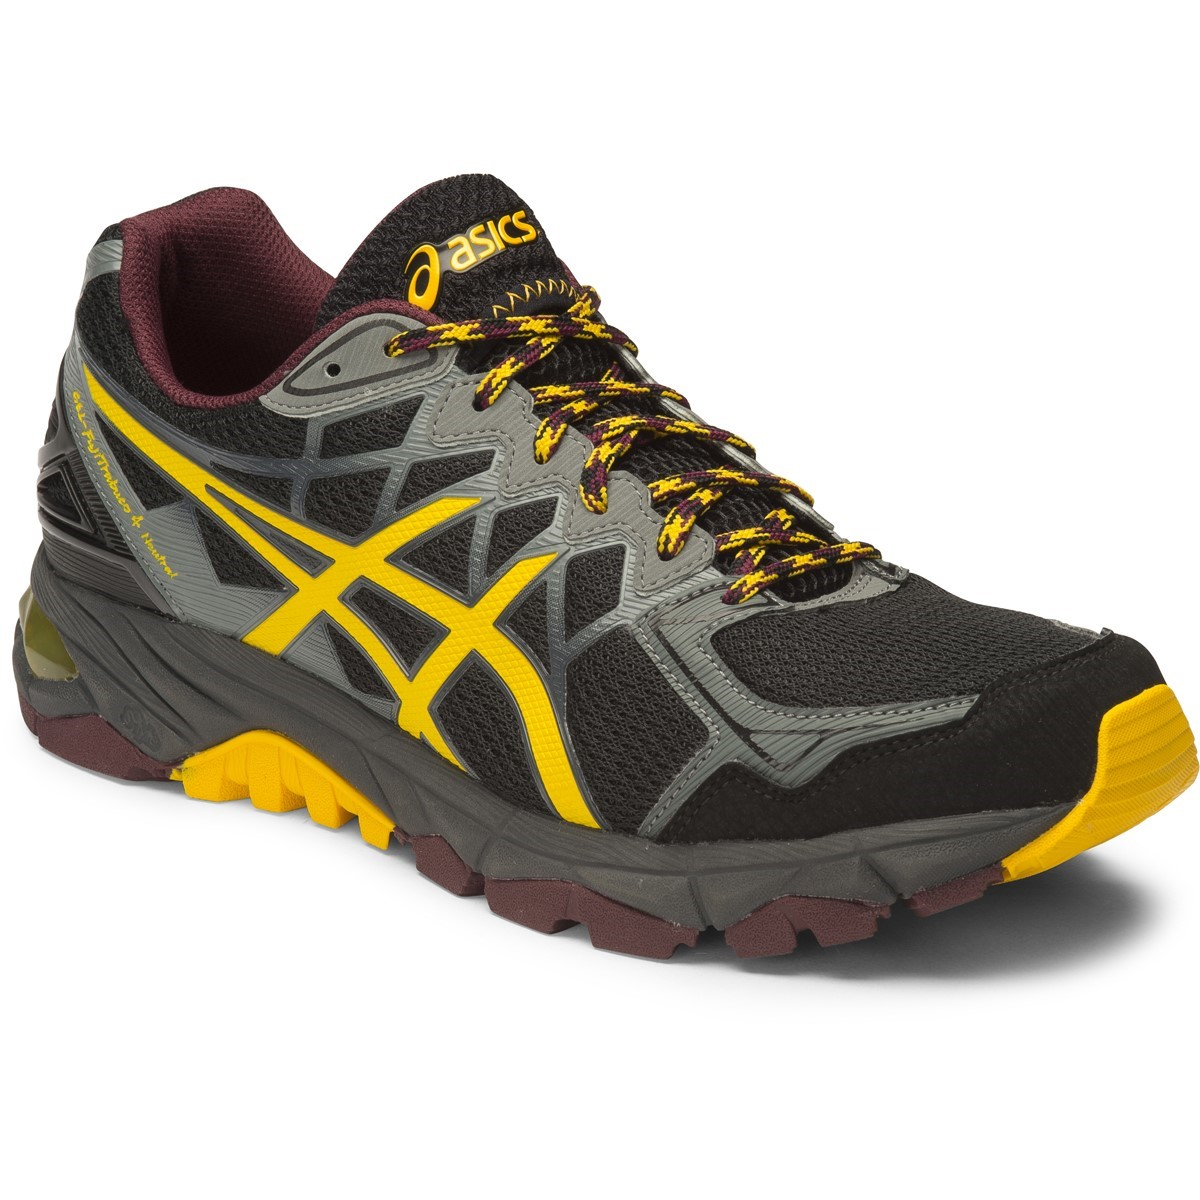 asics gel fuji trabuco 4 neutral mens trail running shoes black spectra yellow royal. Black Bedroom Furniture Sets. Home Design Ideas